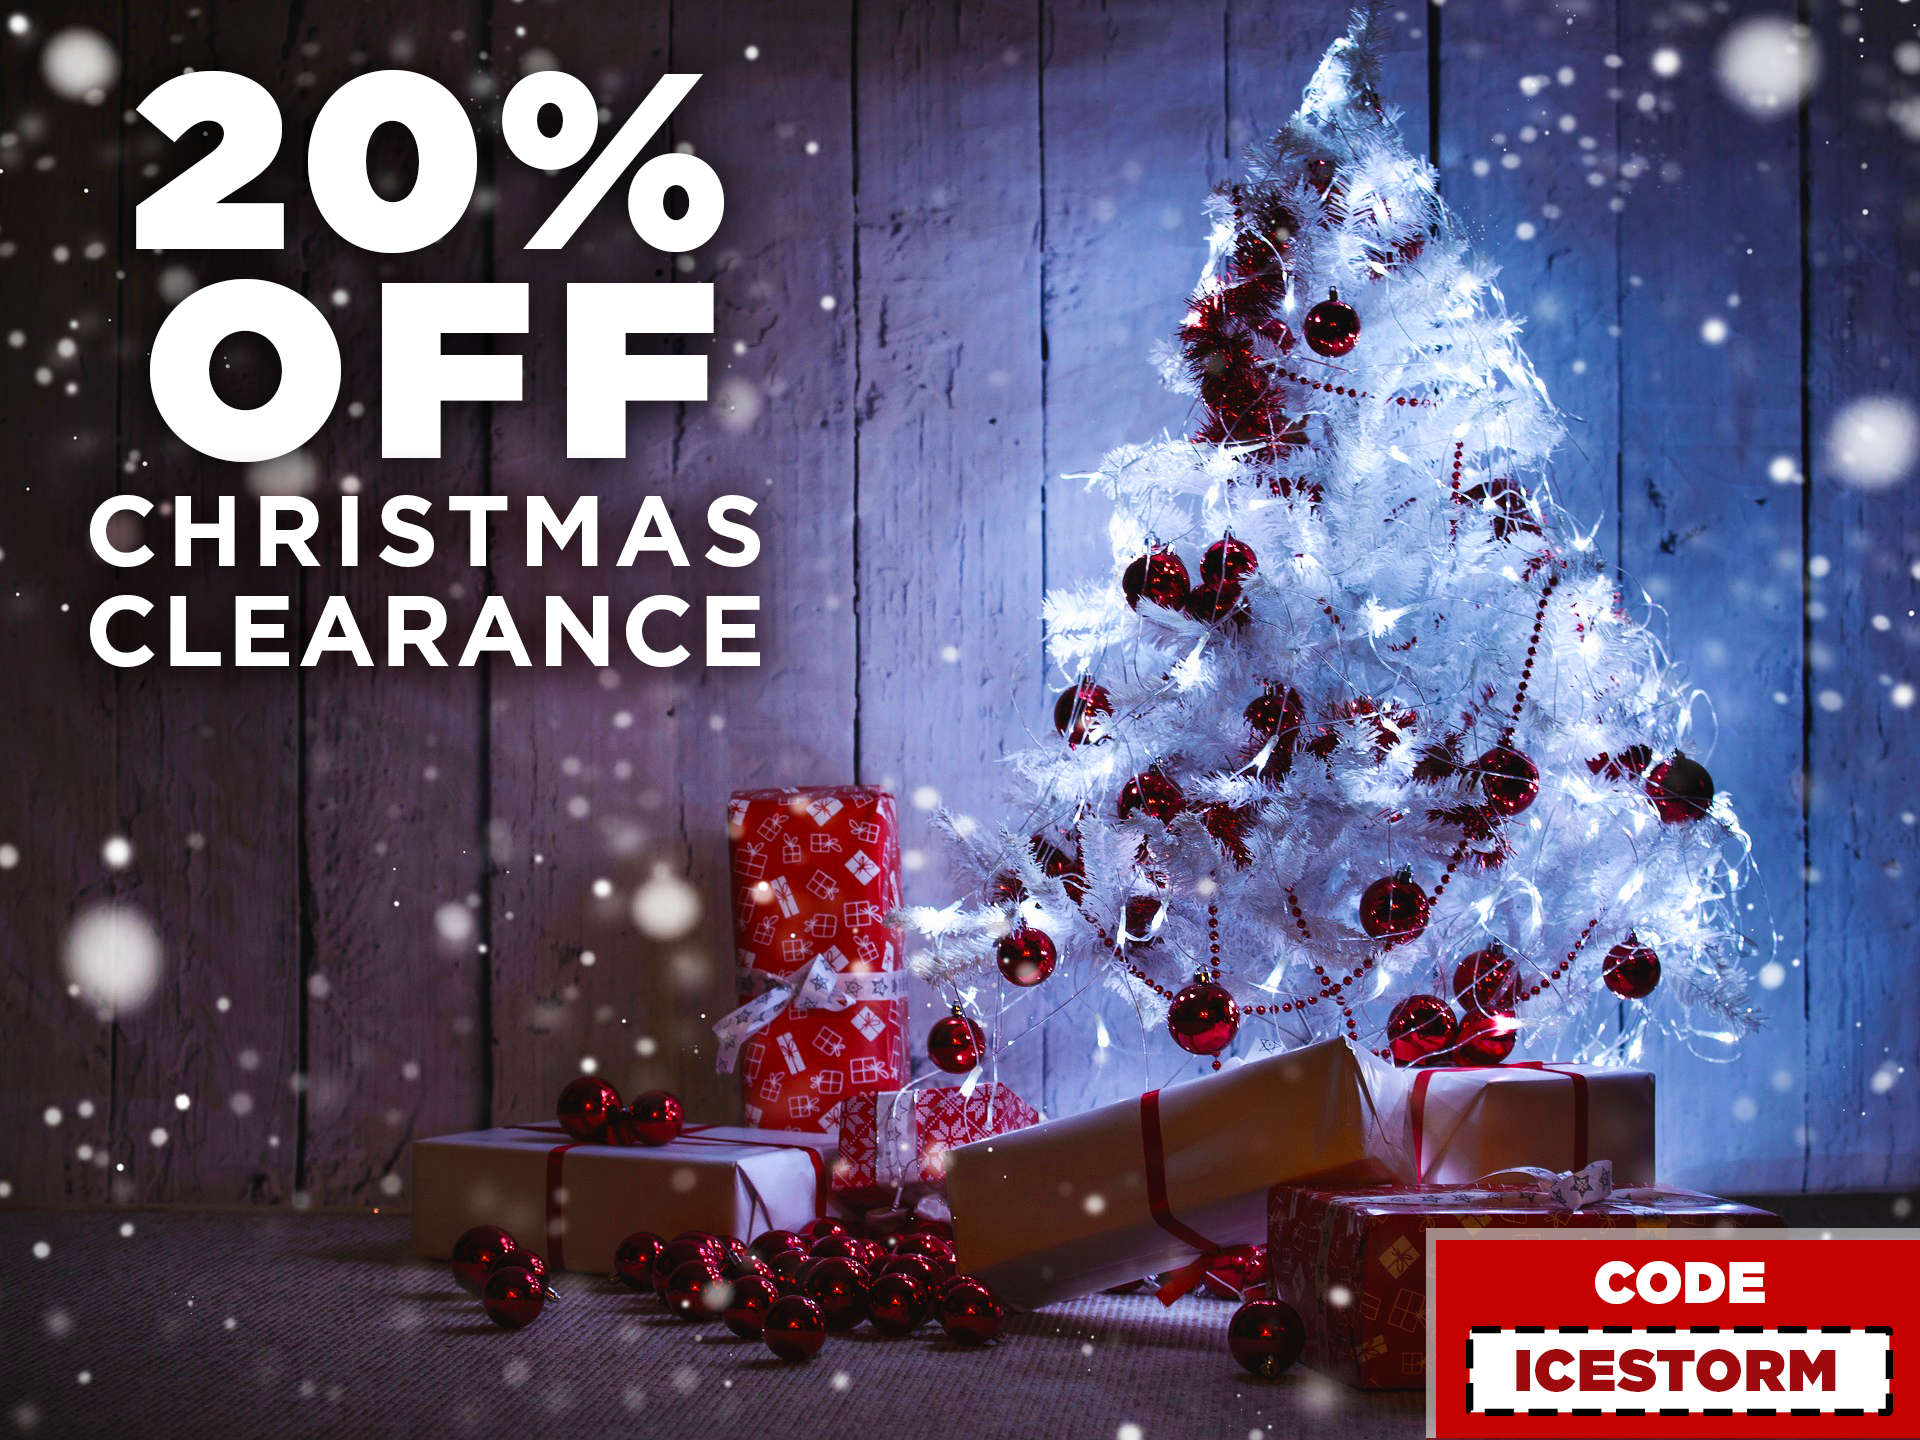 Christmas Net Lights Clearance.Make Your Next Holiday Season Even Brighter Use The Code